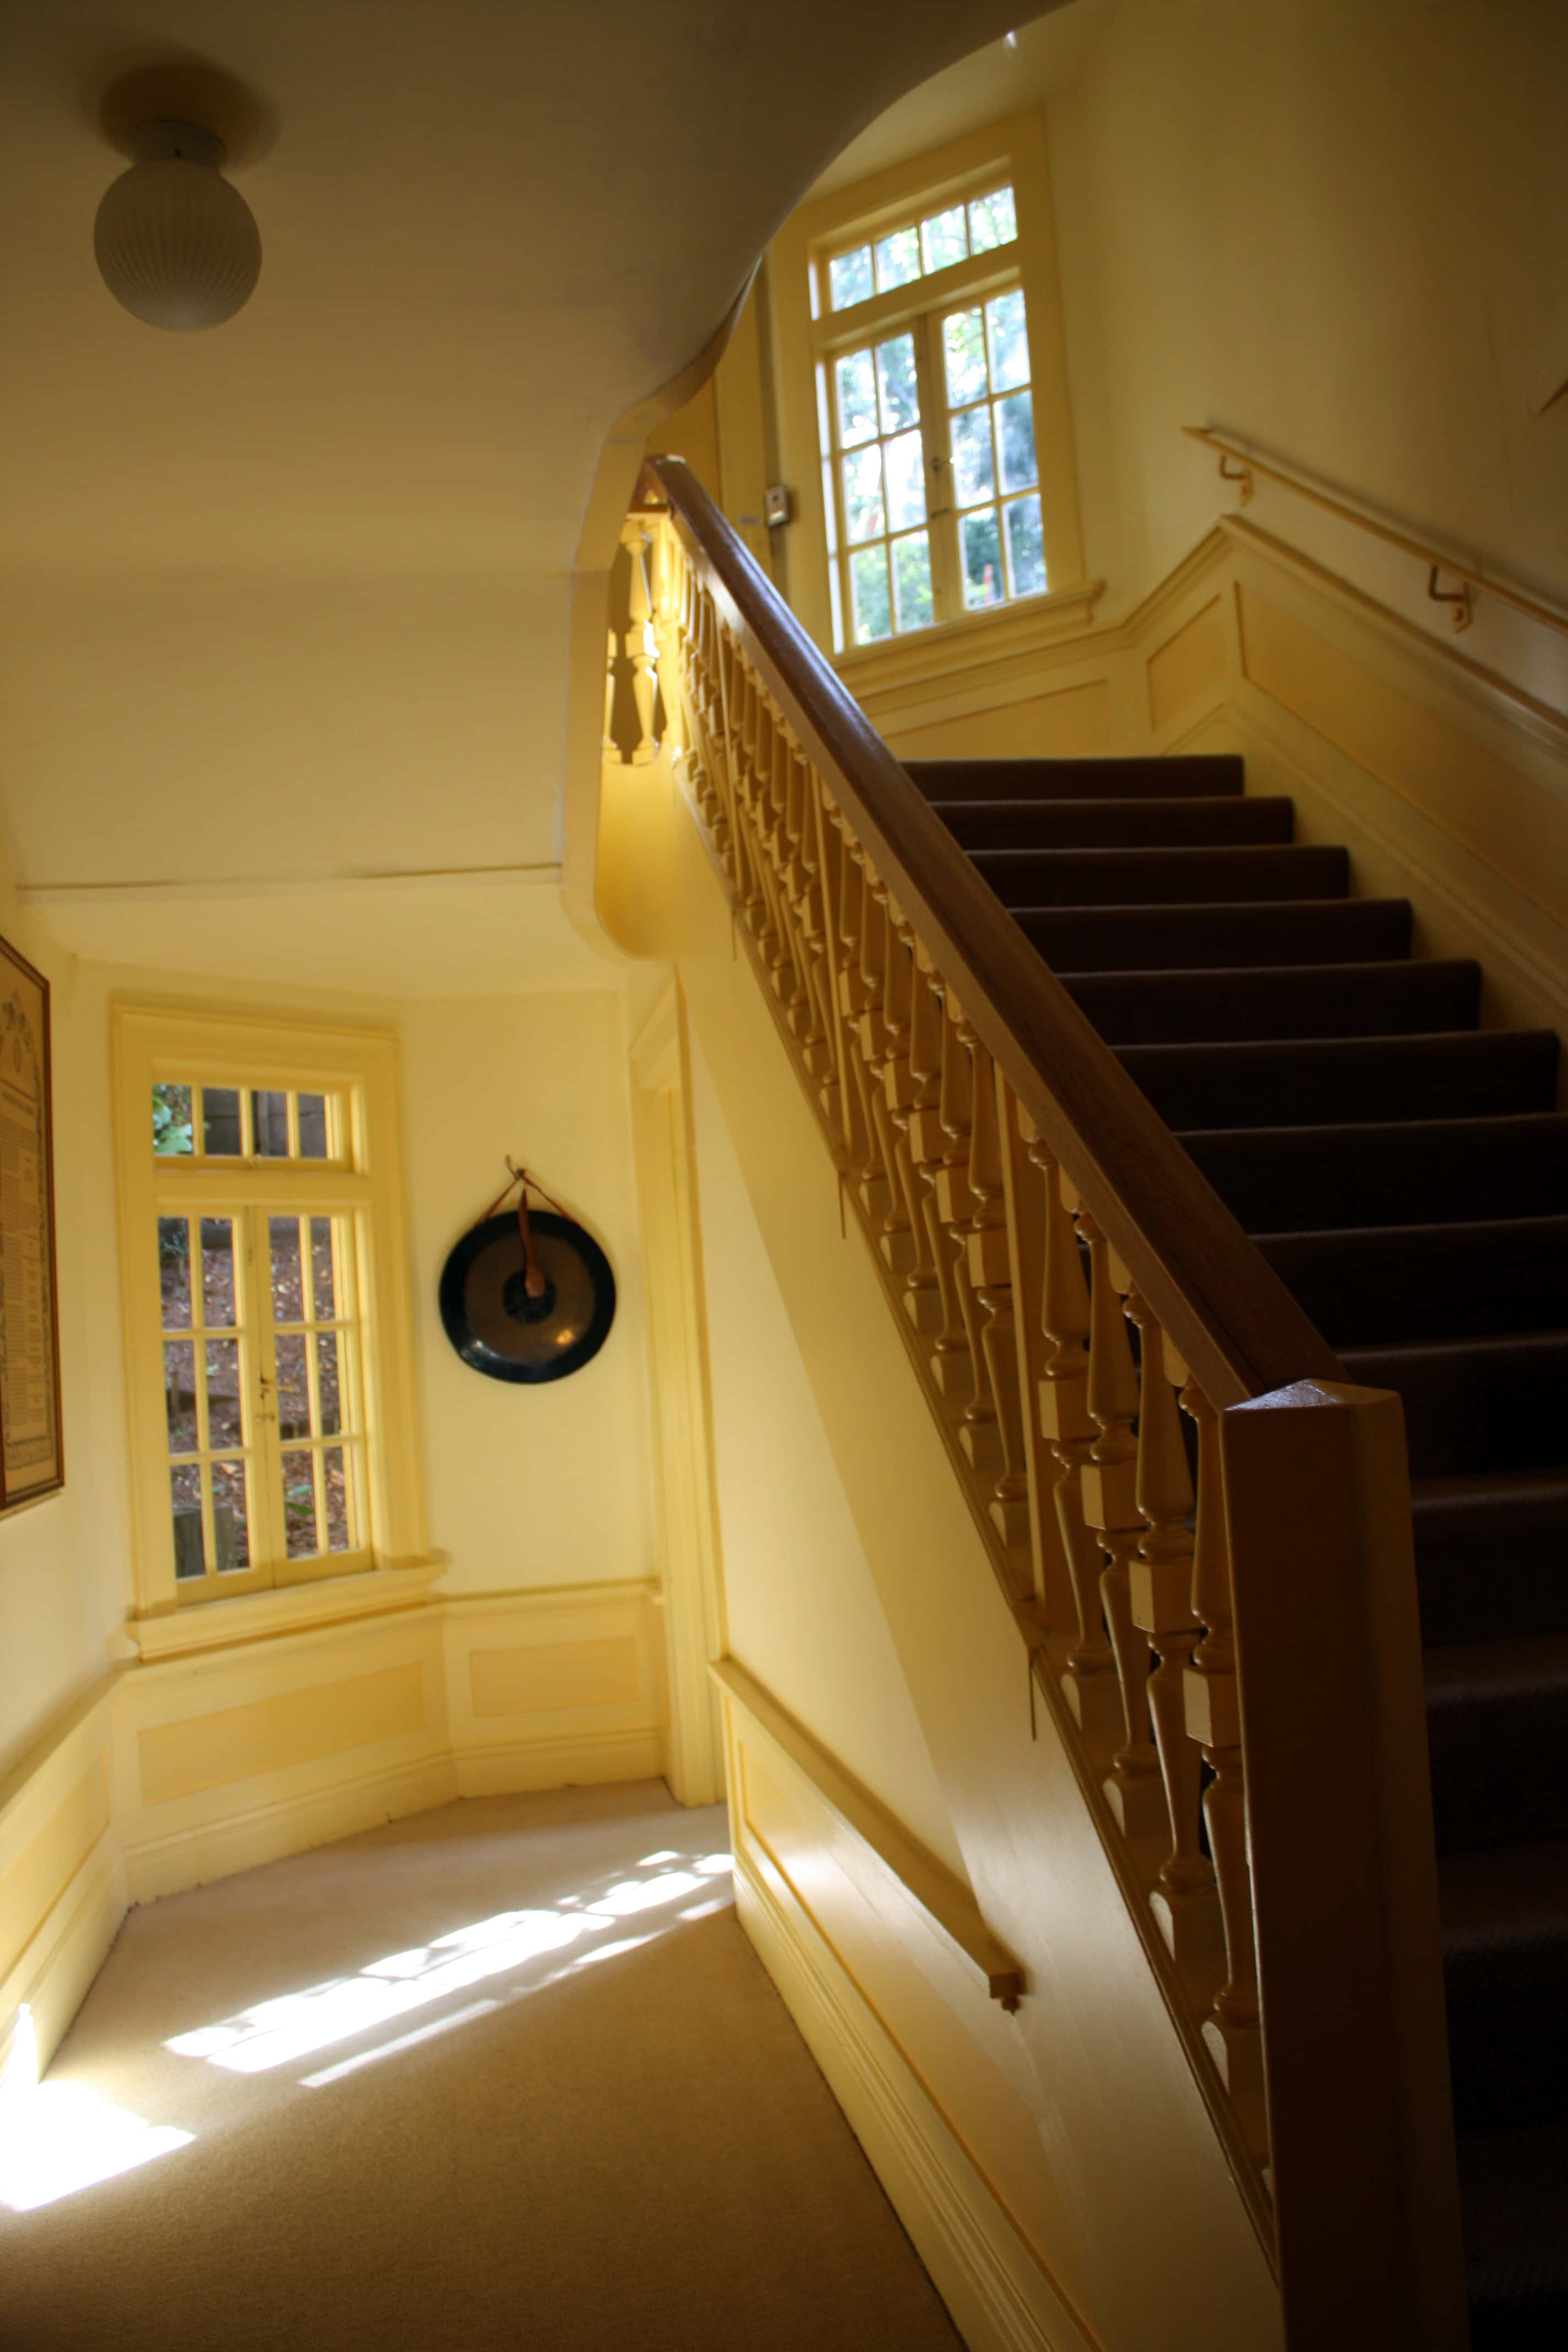 Image of a staircase